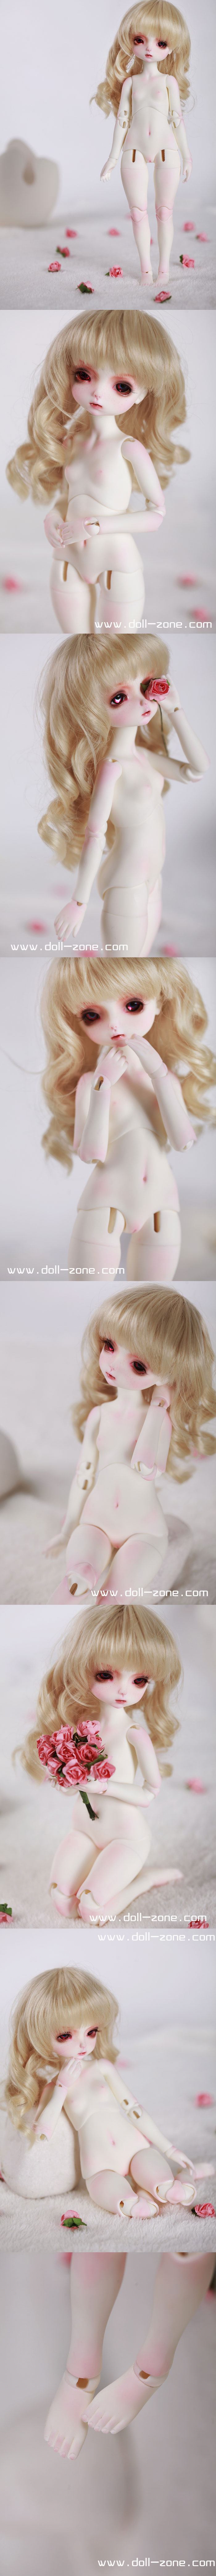 BJD Body B27-004 Girl Boll-jointed doll